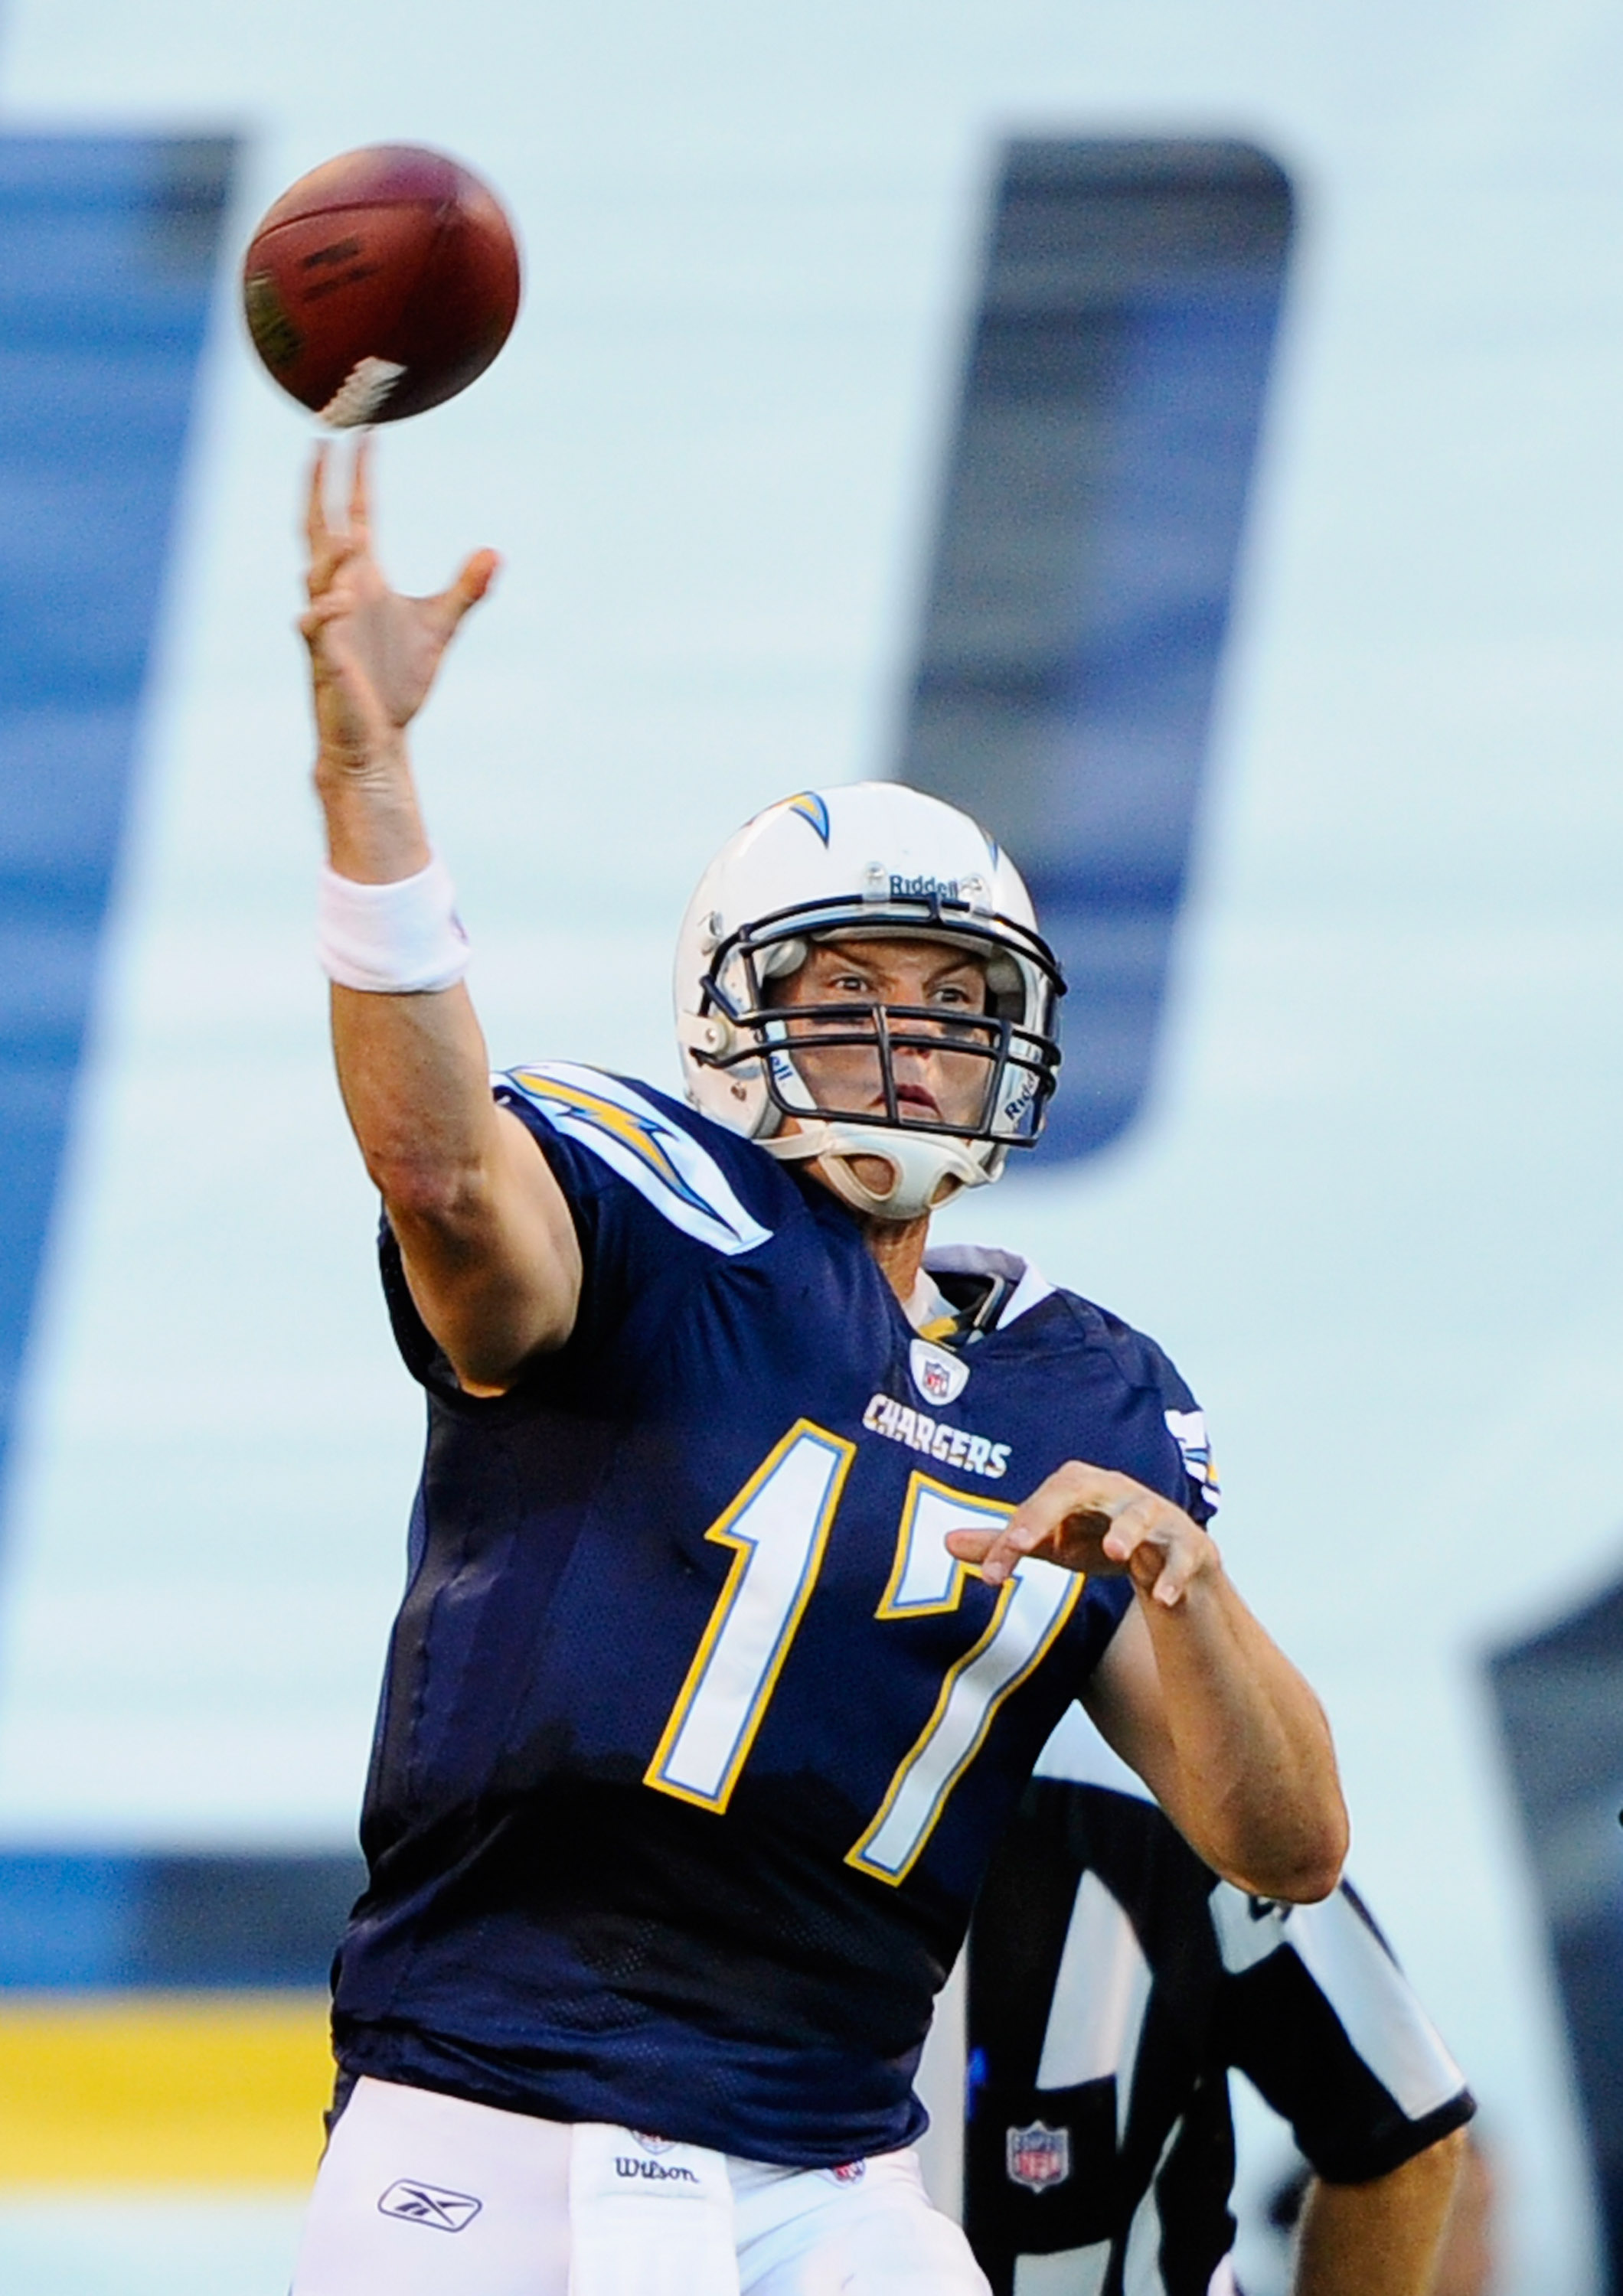 SAN DIEGO - AUGUST 21:  Quarterback Philip Rivers #17 of the San Diego Chargers throws a pass during the pre-season NFL football game against Dallas Cowboys at Qualcomm Stadium on August 21, 2010 in San Diego, California.  (Photo by Kevork Djansezian/Gett